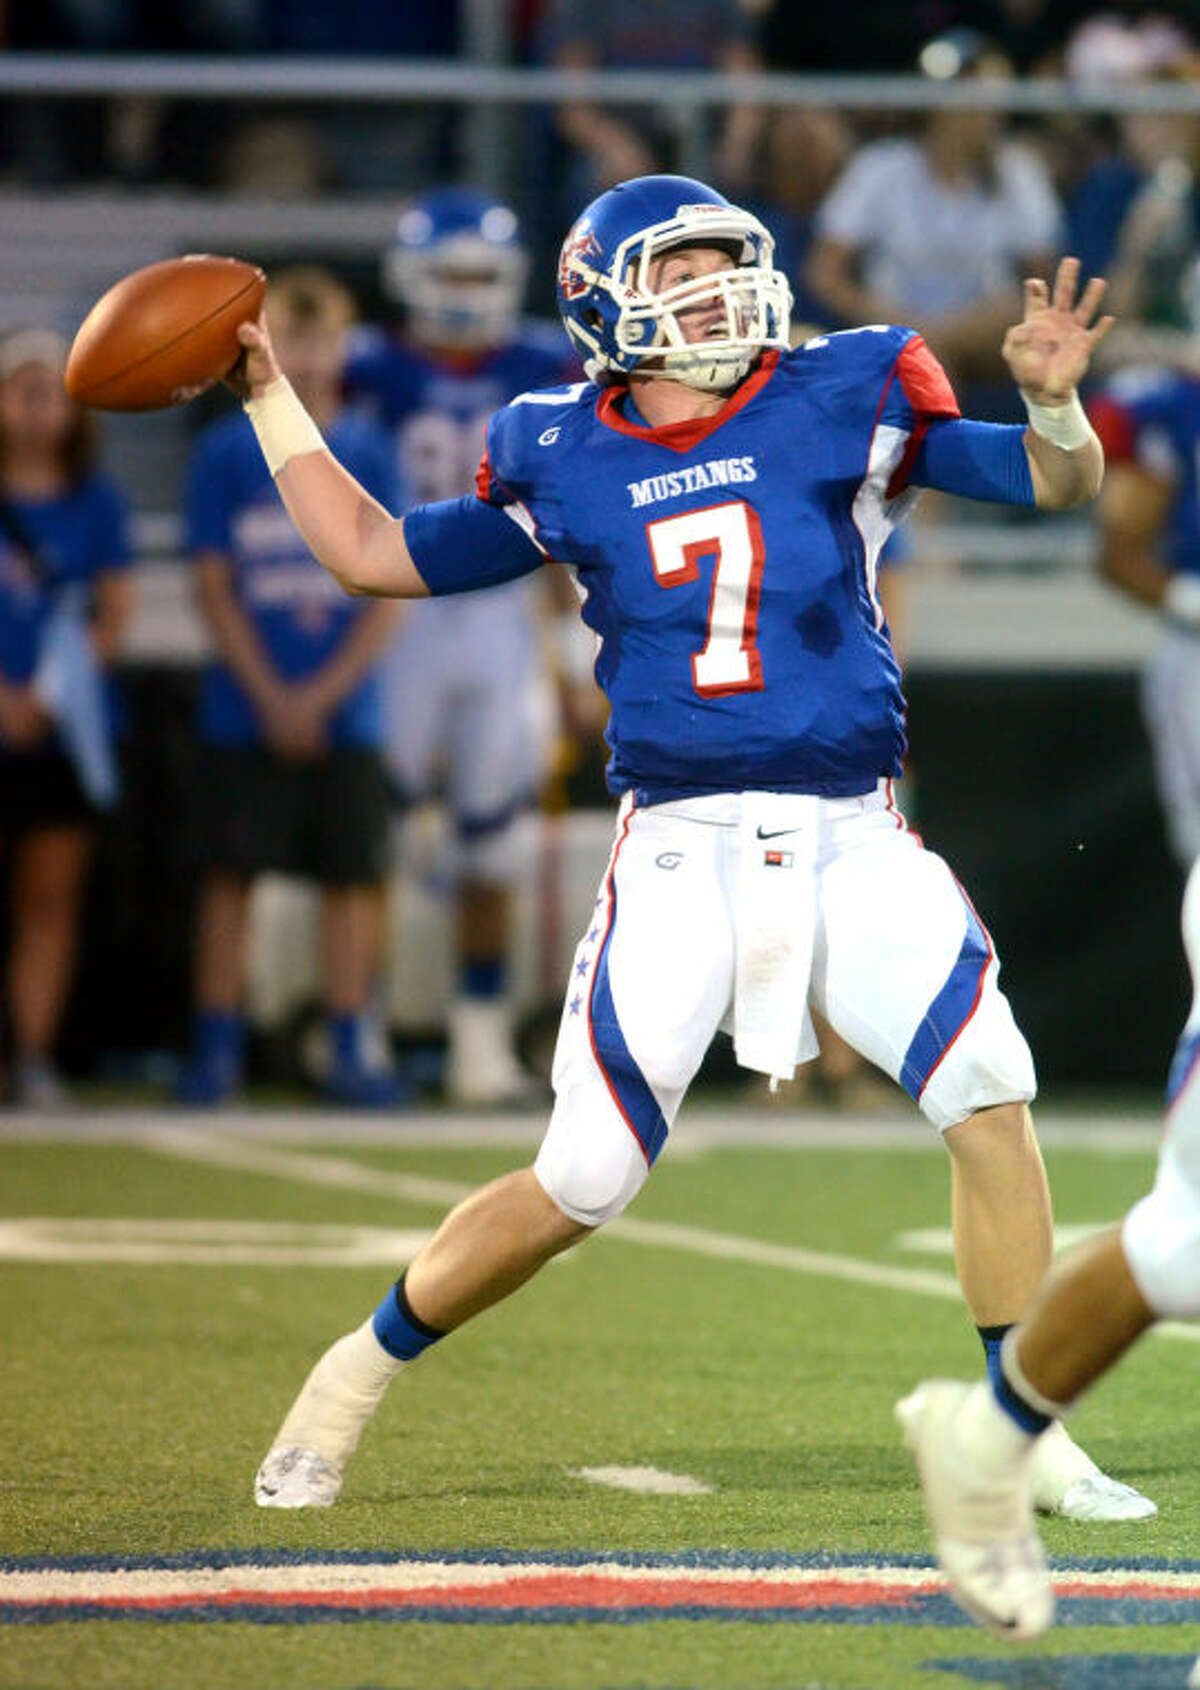 Midland Christian rolled to a 48-0 victory over Arlington Grace Prep behind another great passing performance from senior quarterback Mason McClendon, who was 12-of-16 passing for 362 yards and six touchdowns.